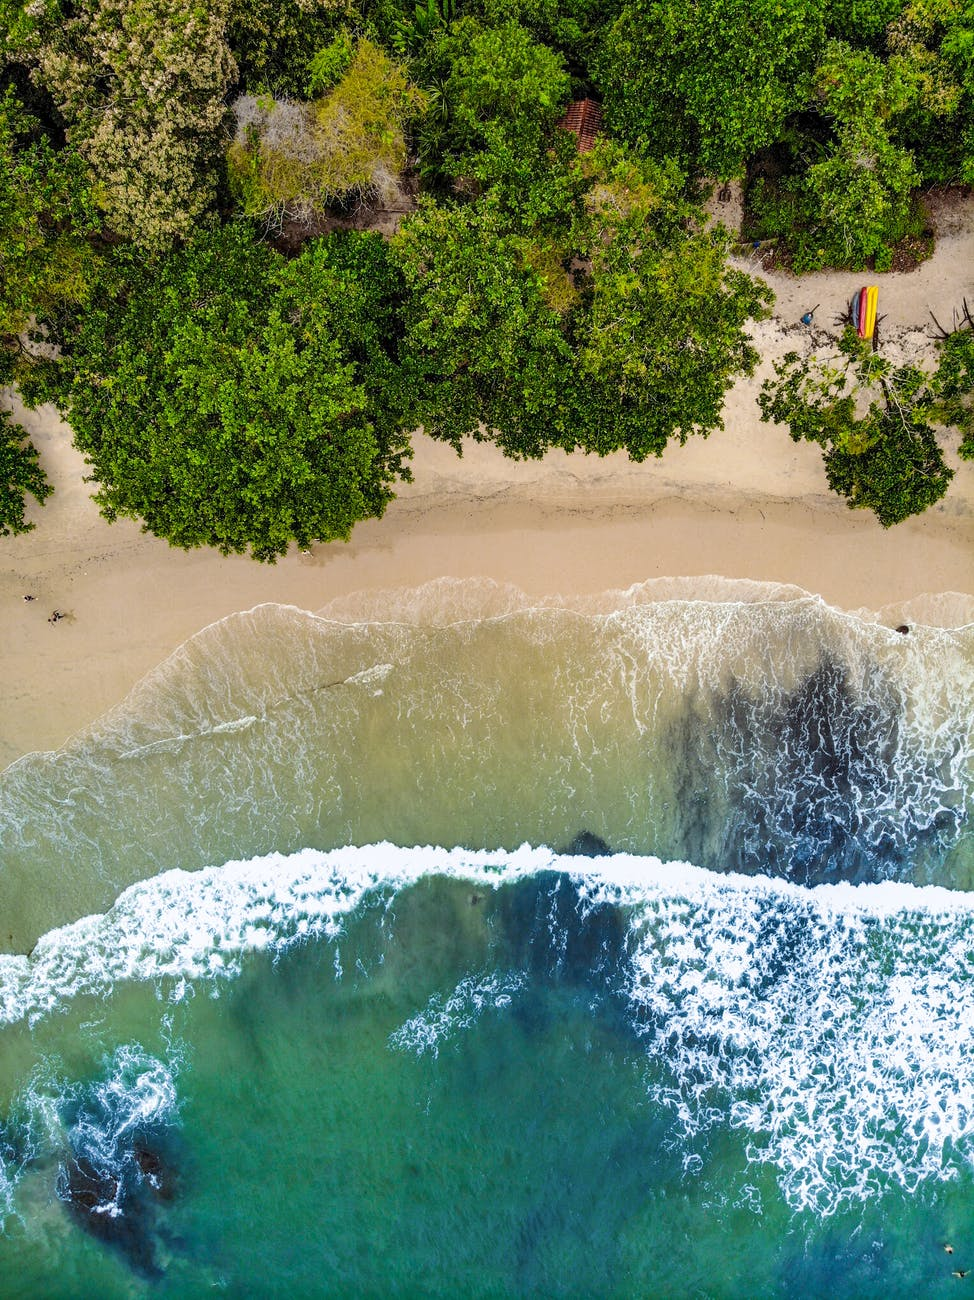 tropical coast with green forest washed by waves